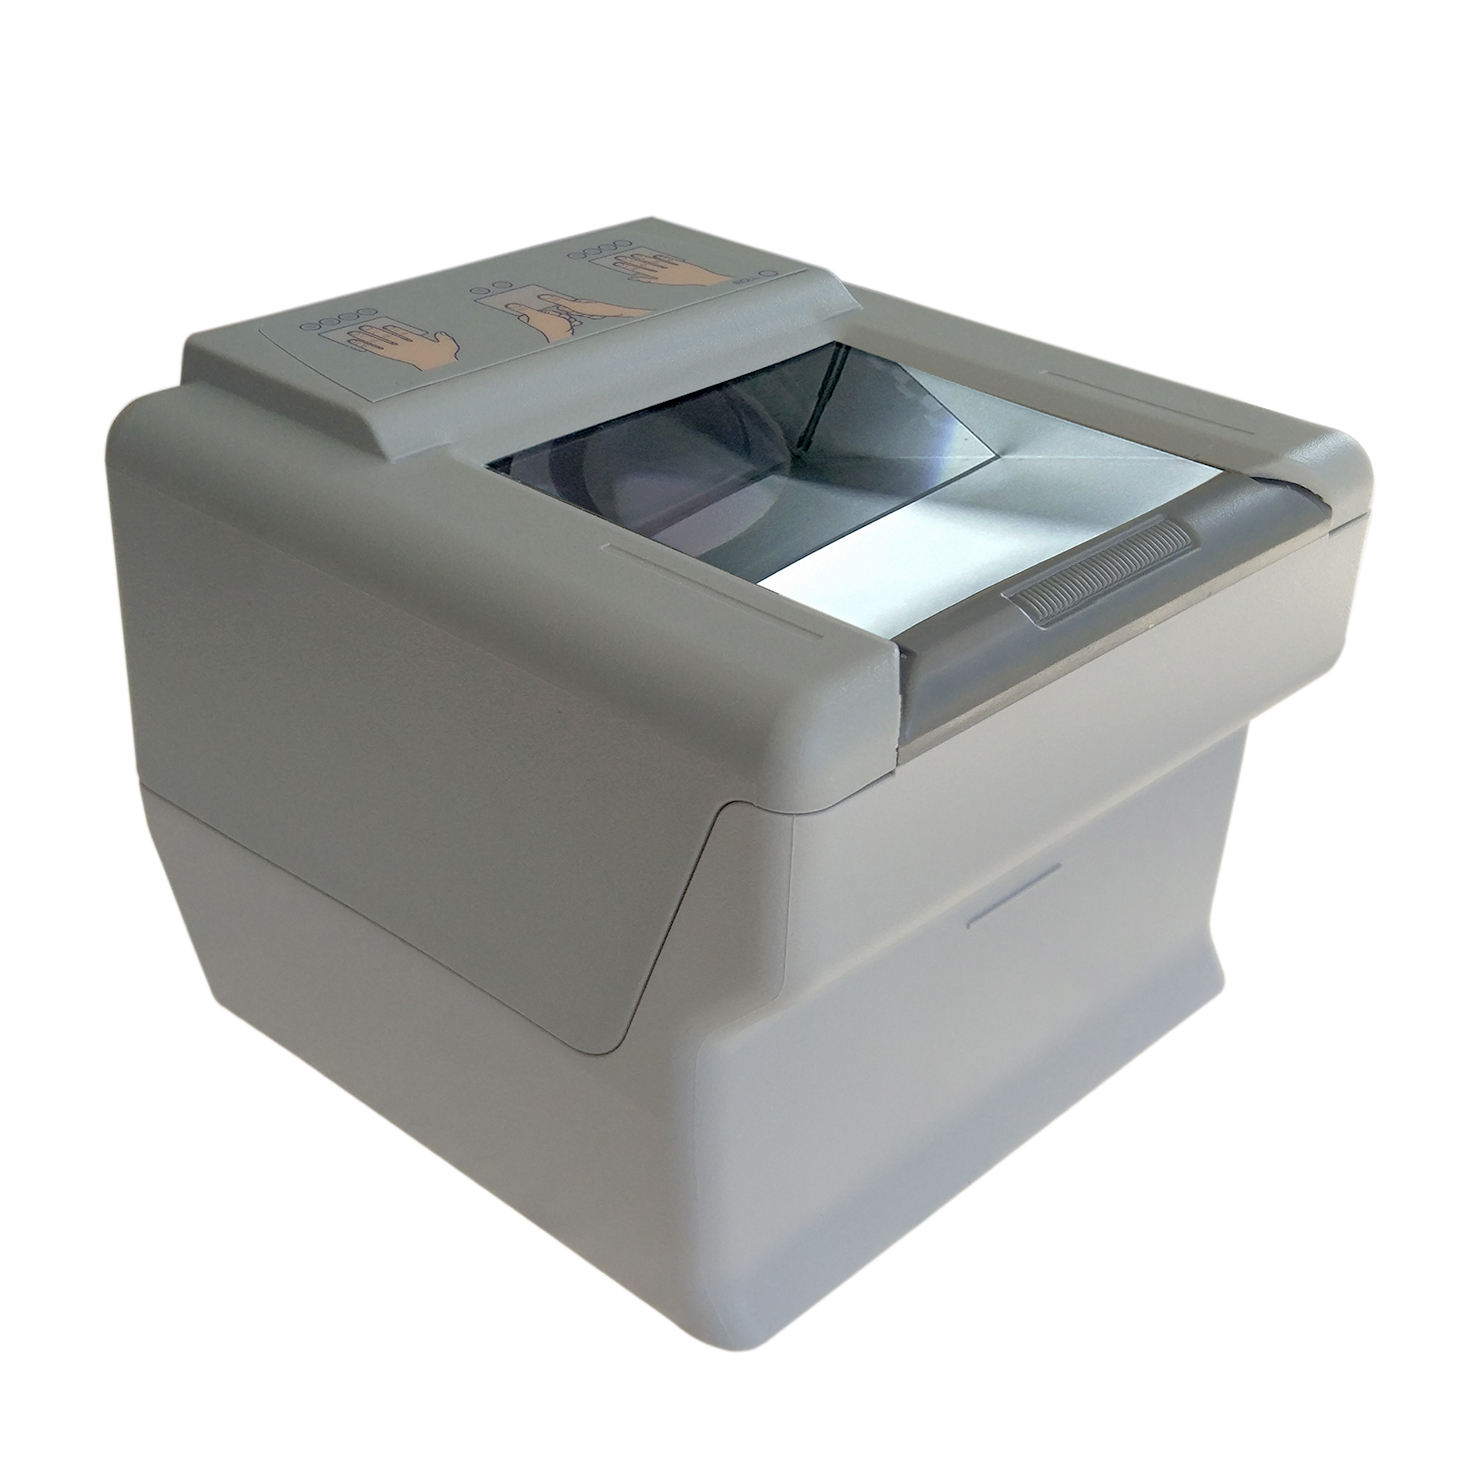 Portable biometric mobile enrollment kit 10 fingerprint scanner voting application